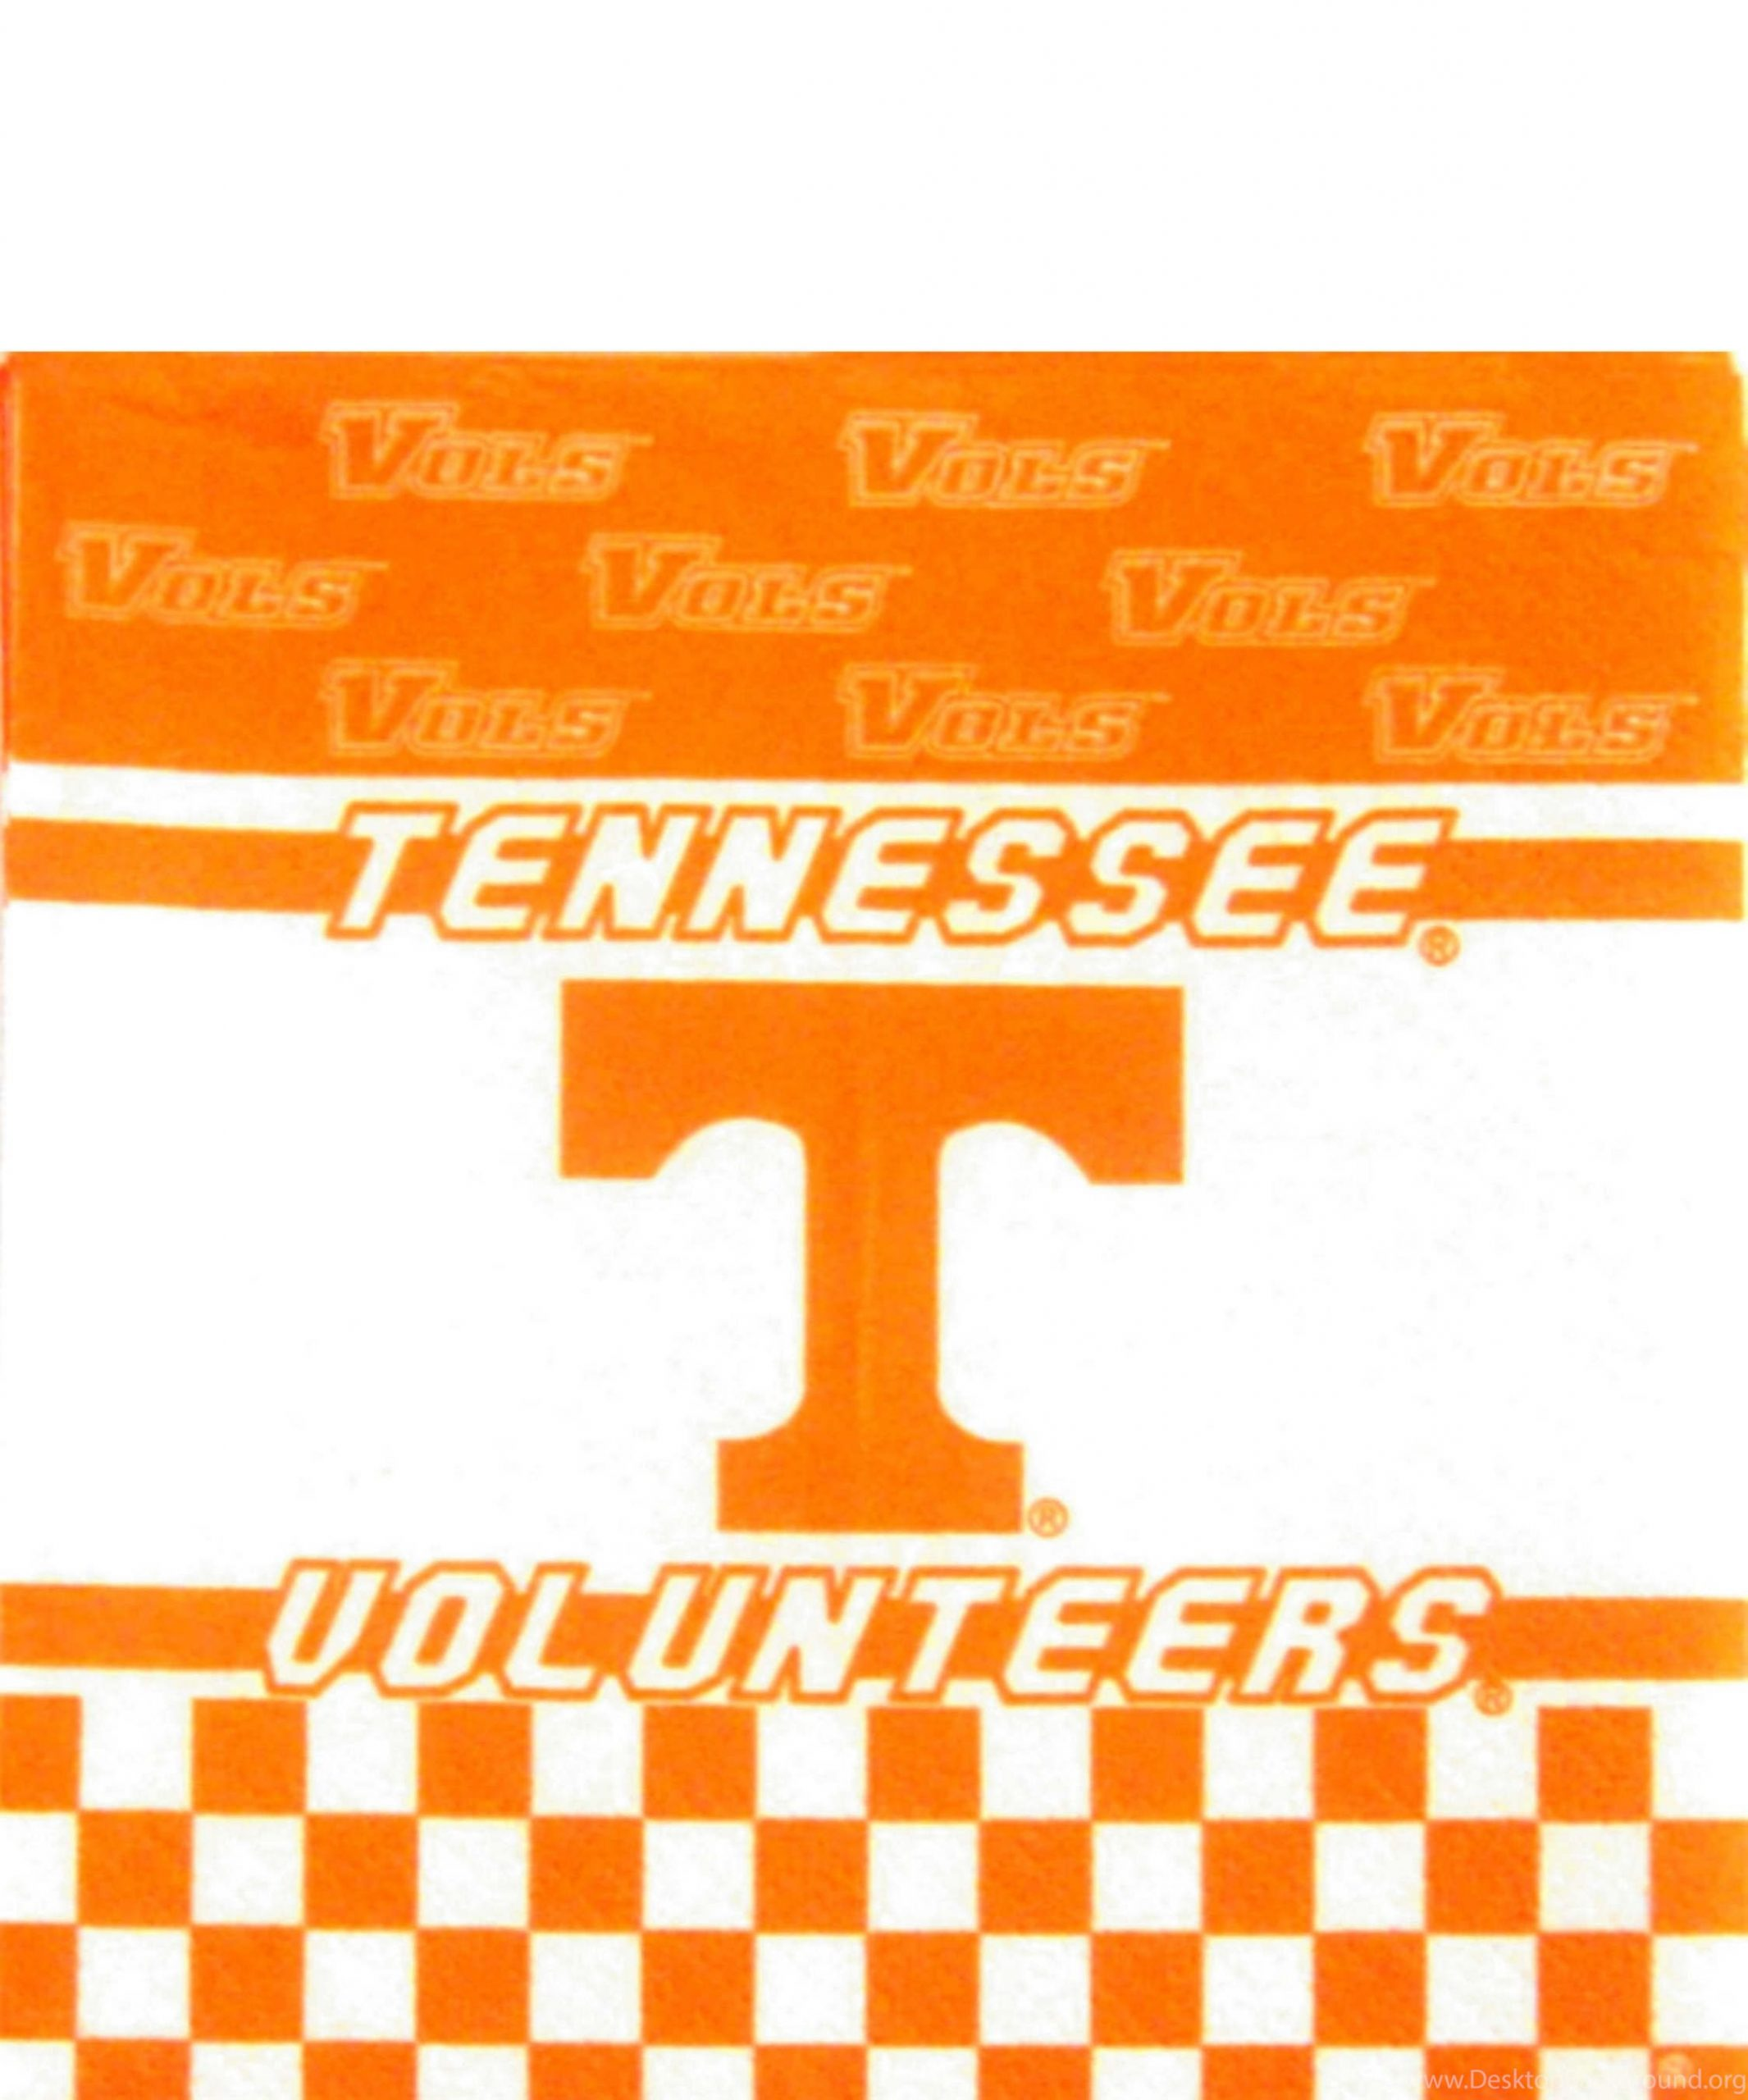 tennessee vols wallpapers 6c0 wallpapers goo ut vols football